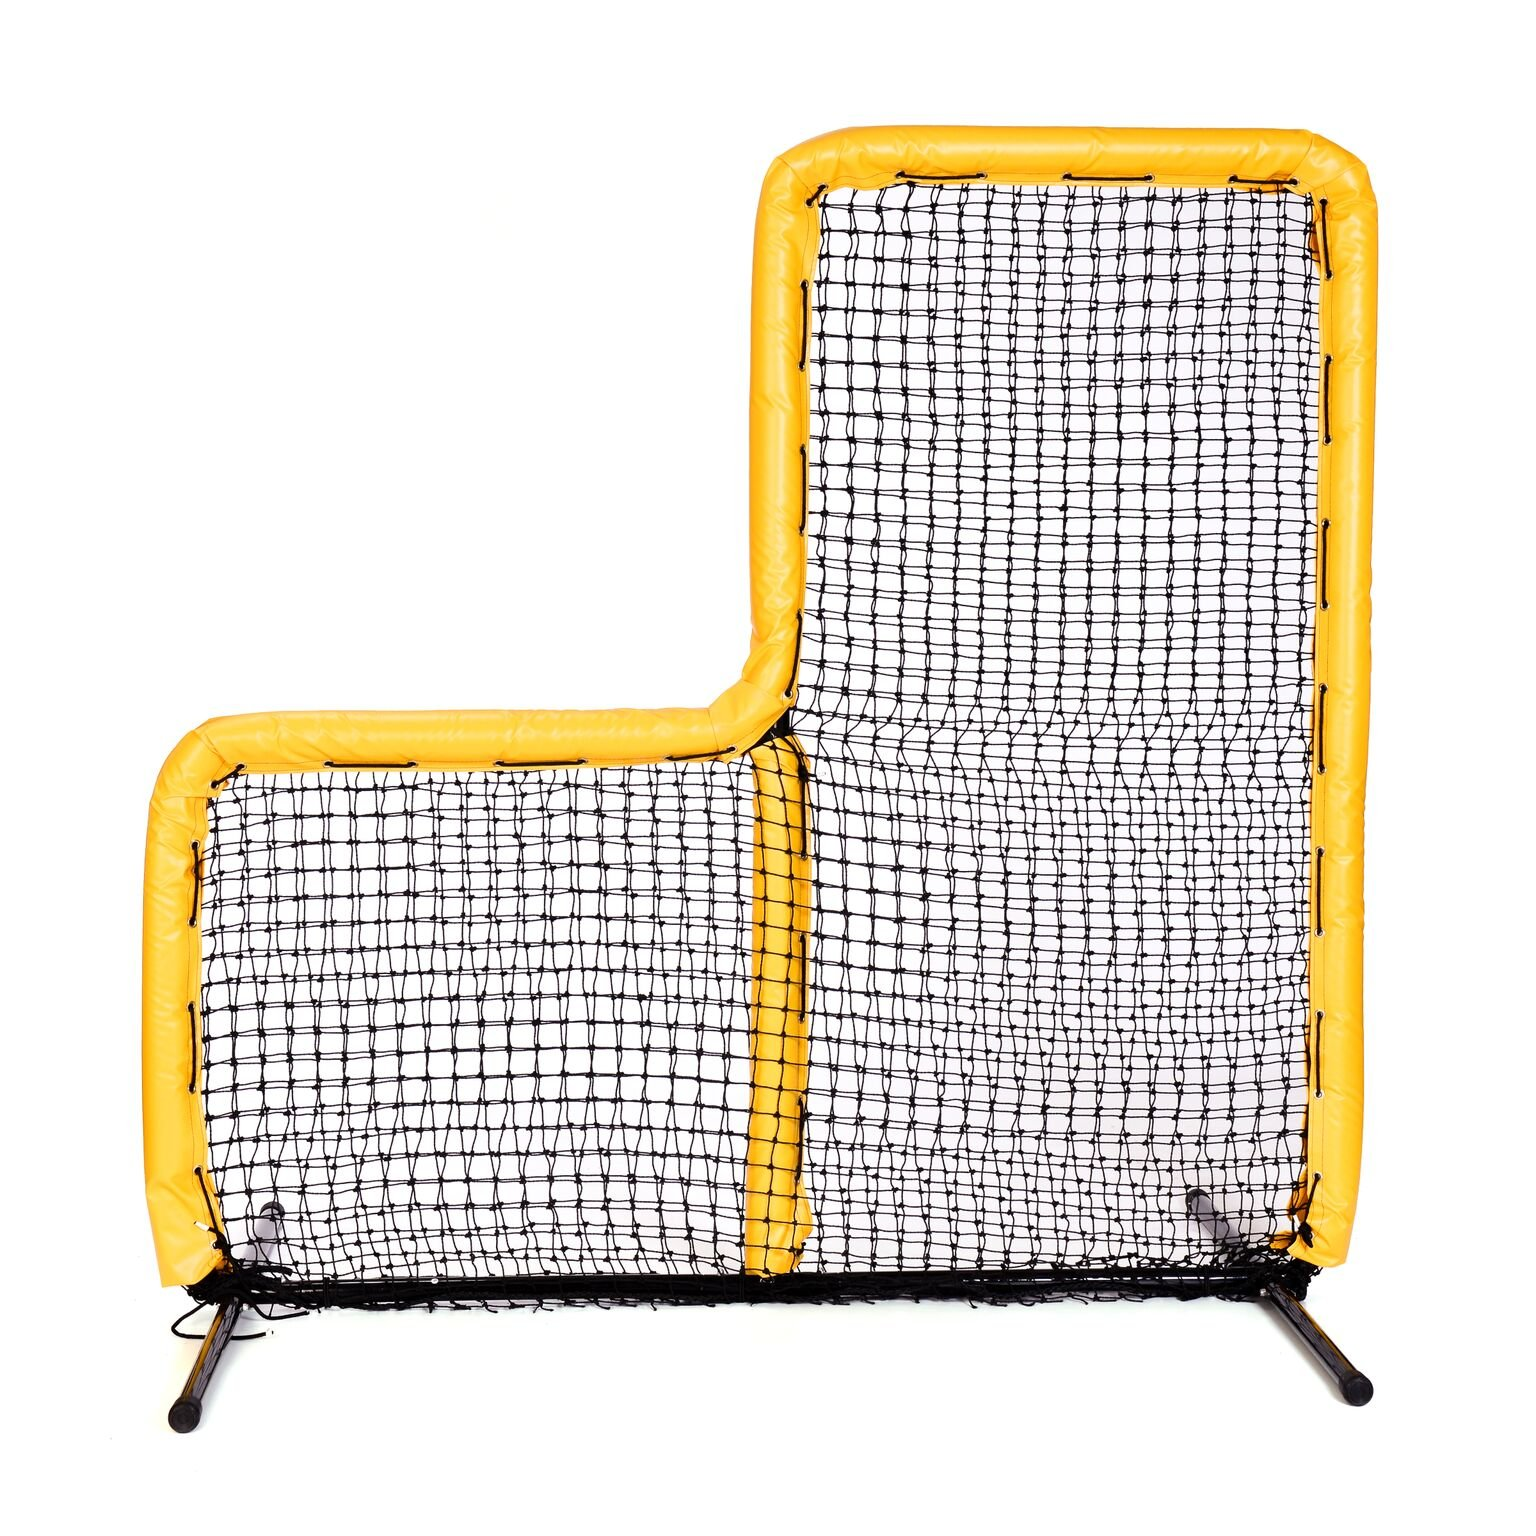 Armor Series Pitching Screen Baseball Softball Practice Net with Screen Bulletz Leg Caps. 7x7 L-Screen Perfect for Baseball and Softball Batting Practice. Choose Padding Color. (Yellow) by Armor